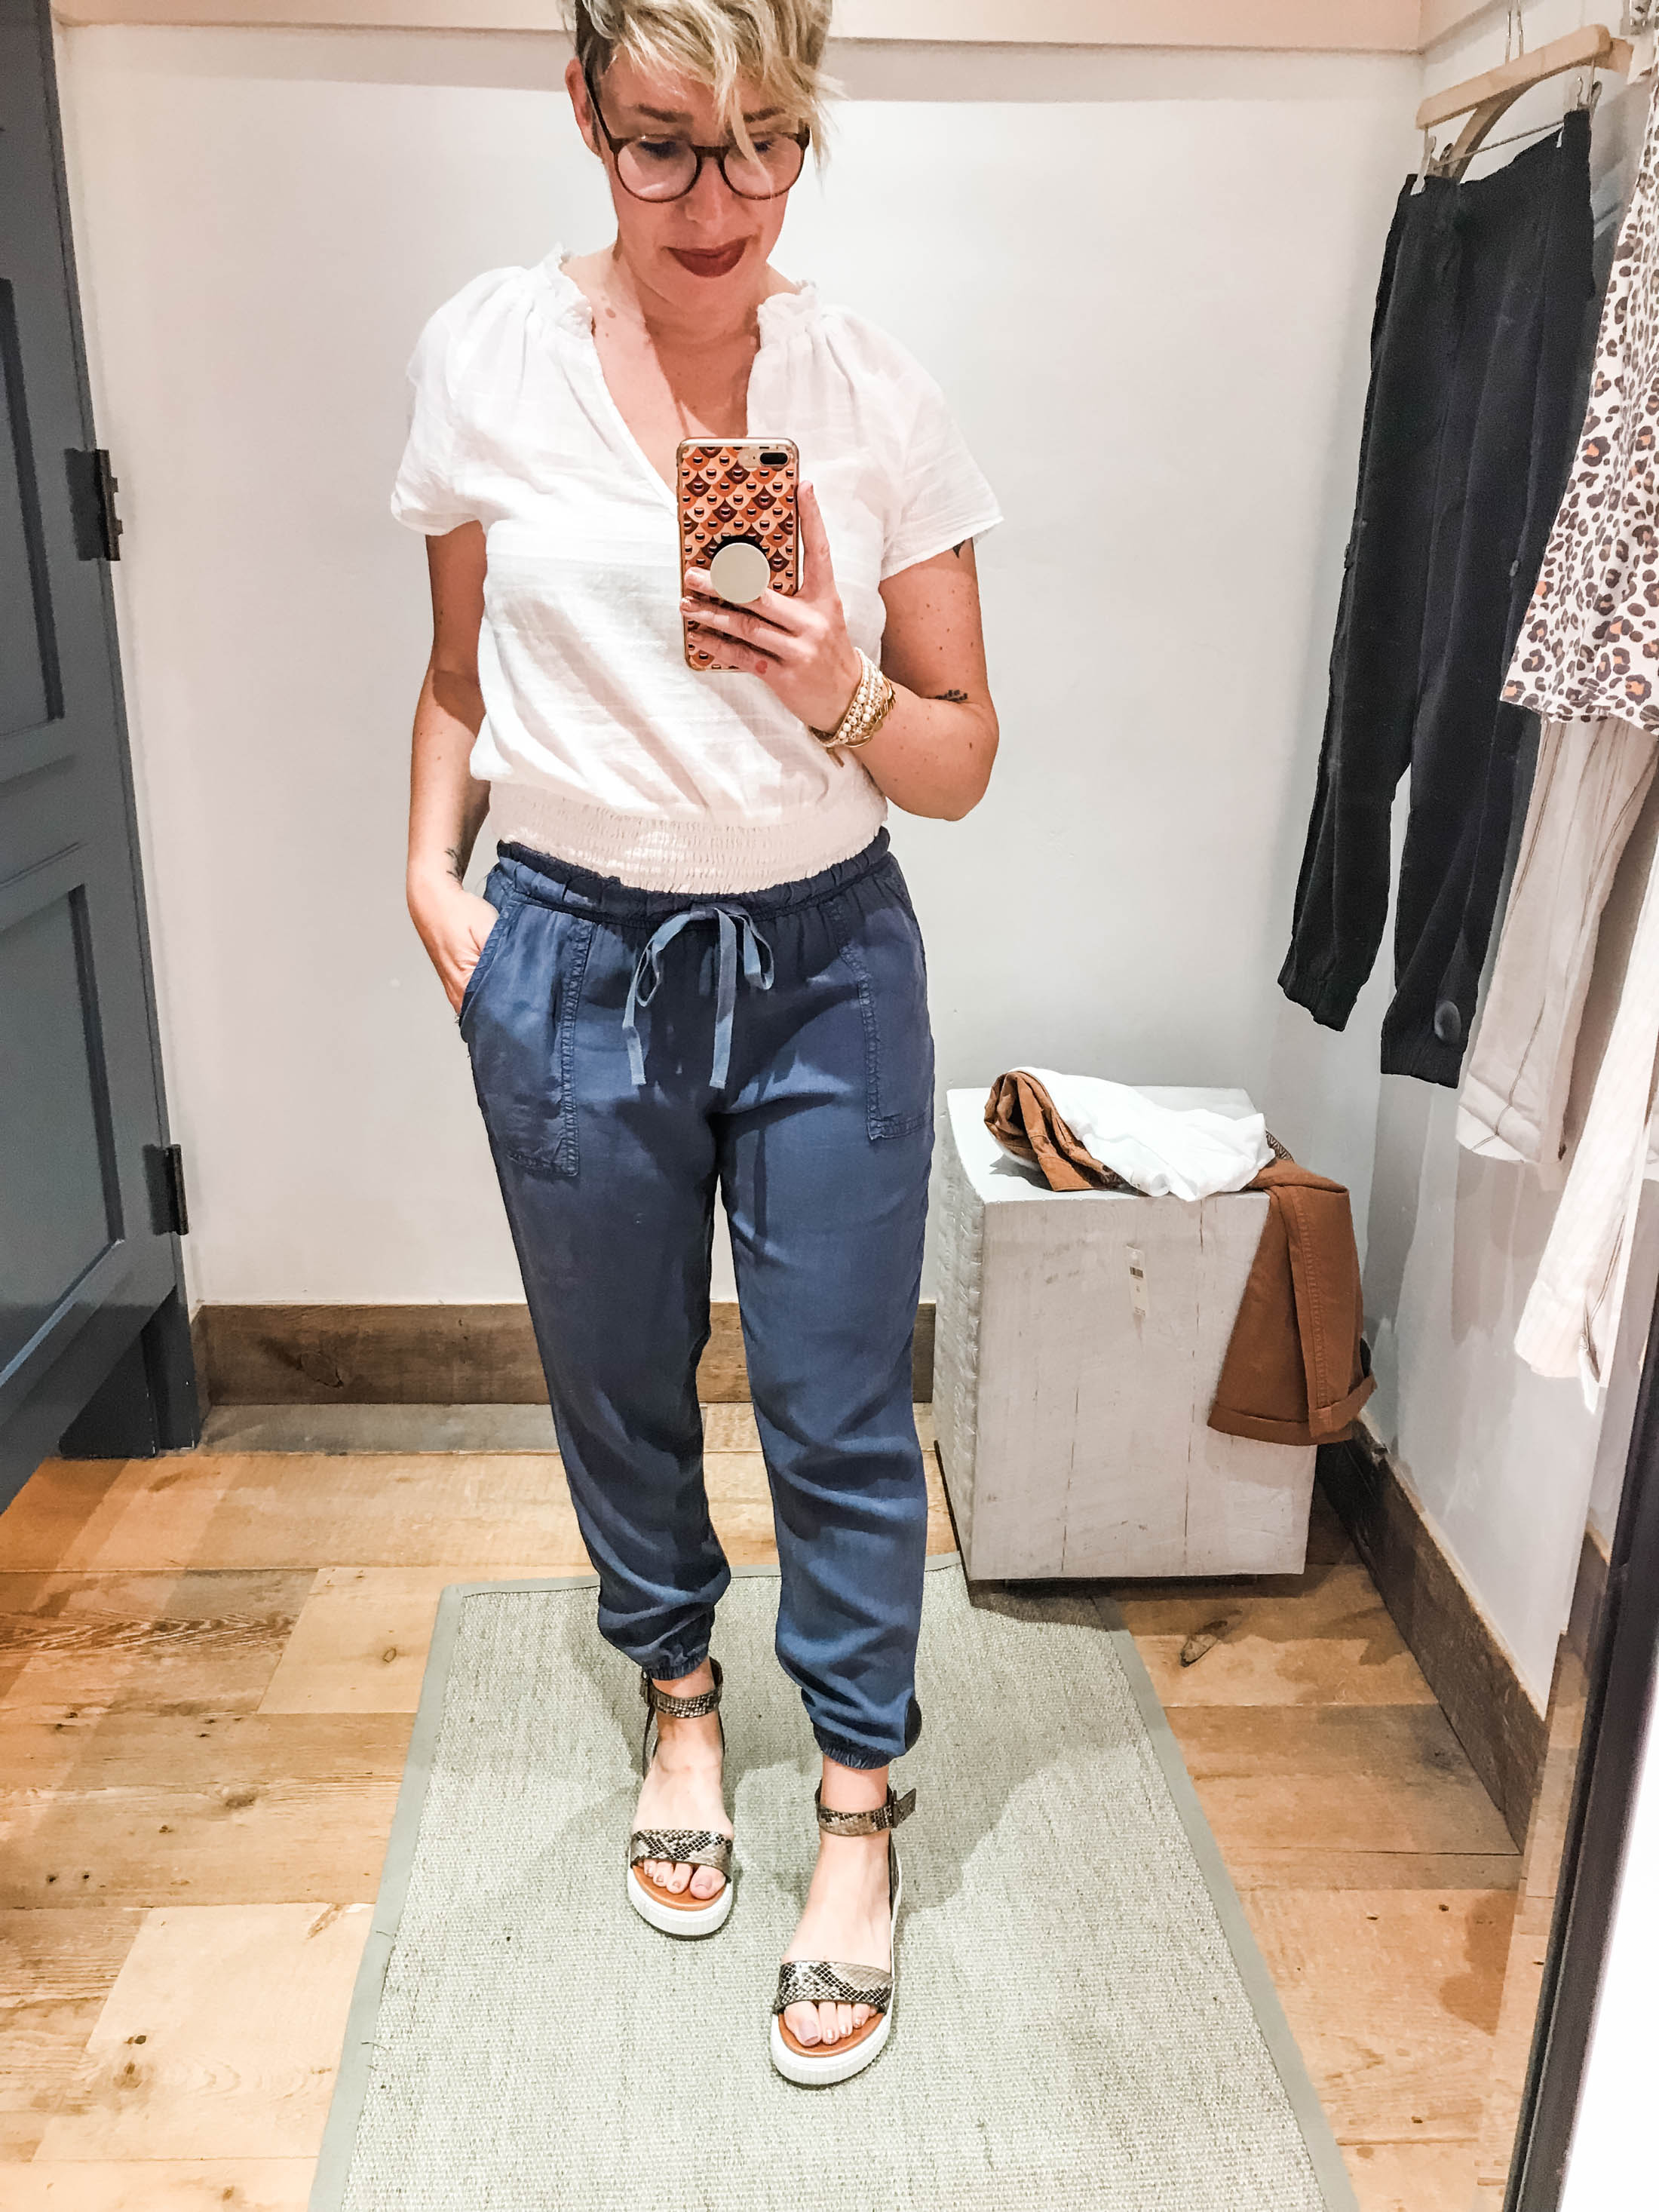 Cute summer outfits sans shorts? We're on it. Time for #dressingroomselfies at Anthropologie. Checking out lightweight, non-jeans pants —some with Tencel.